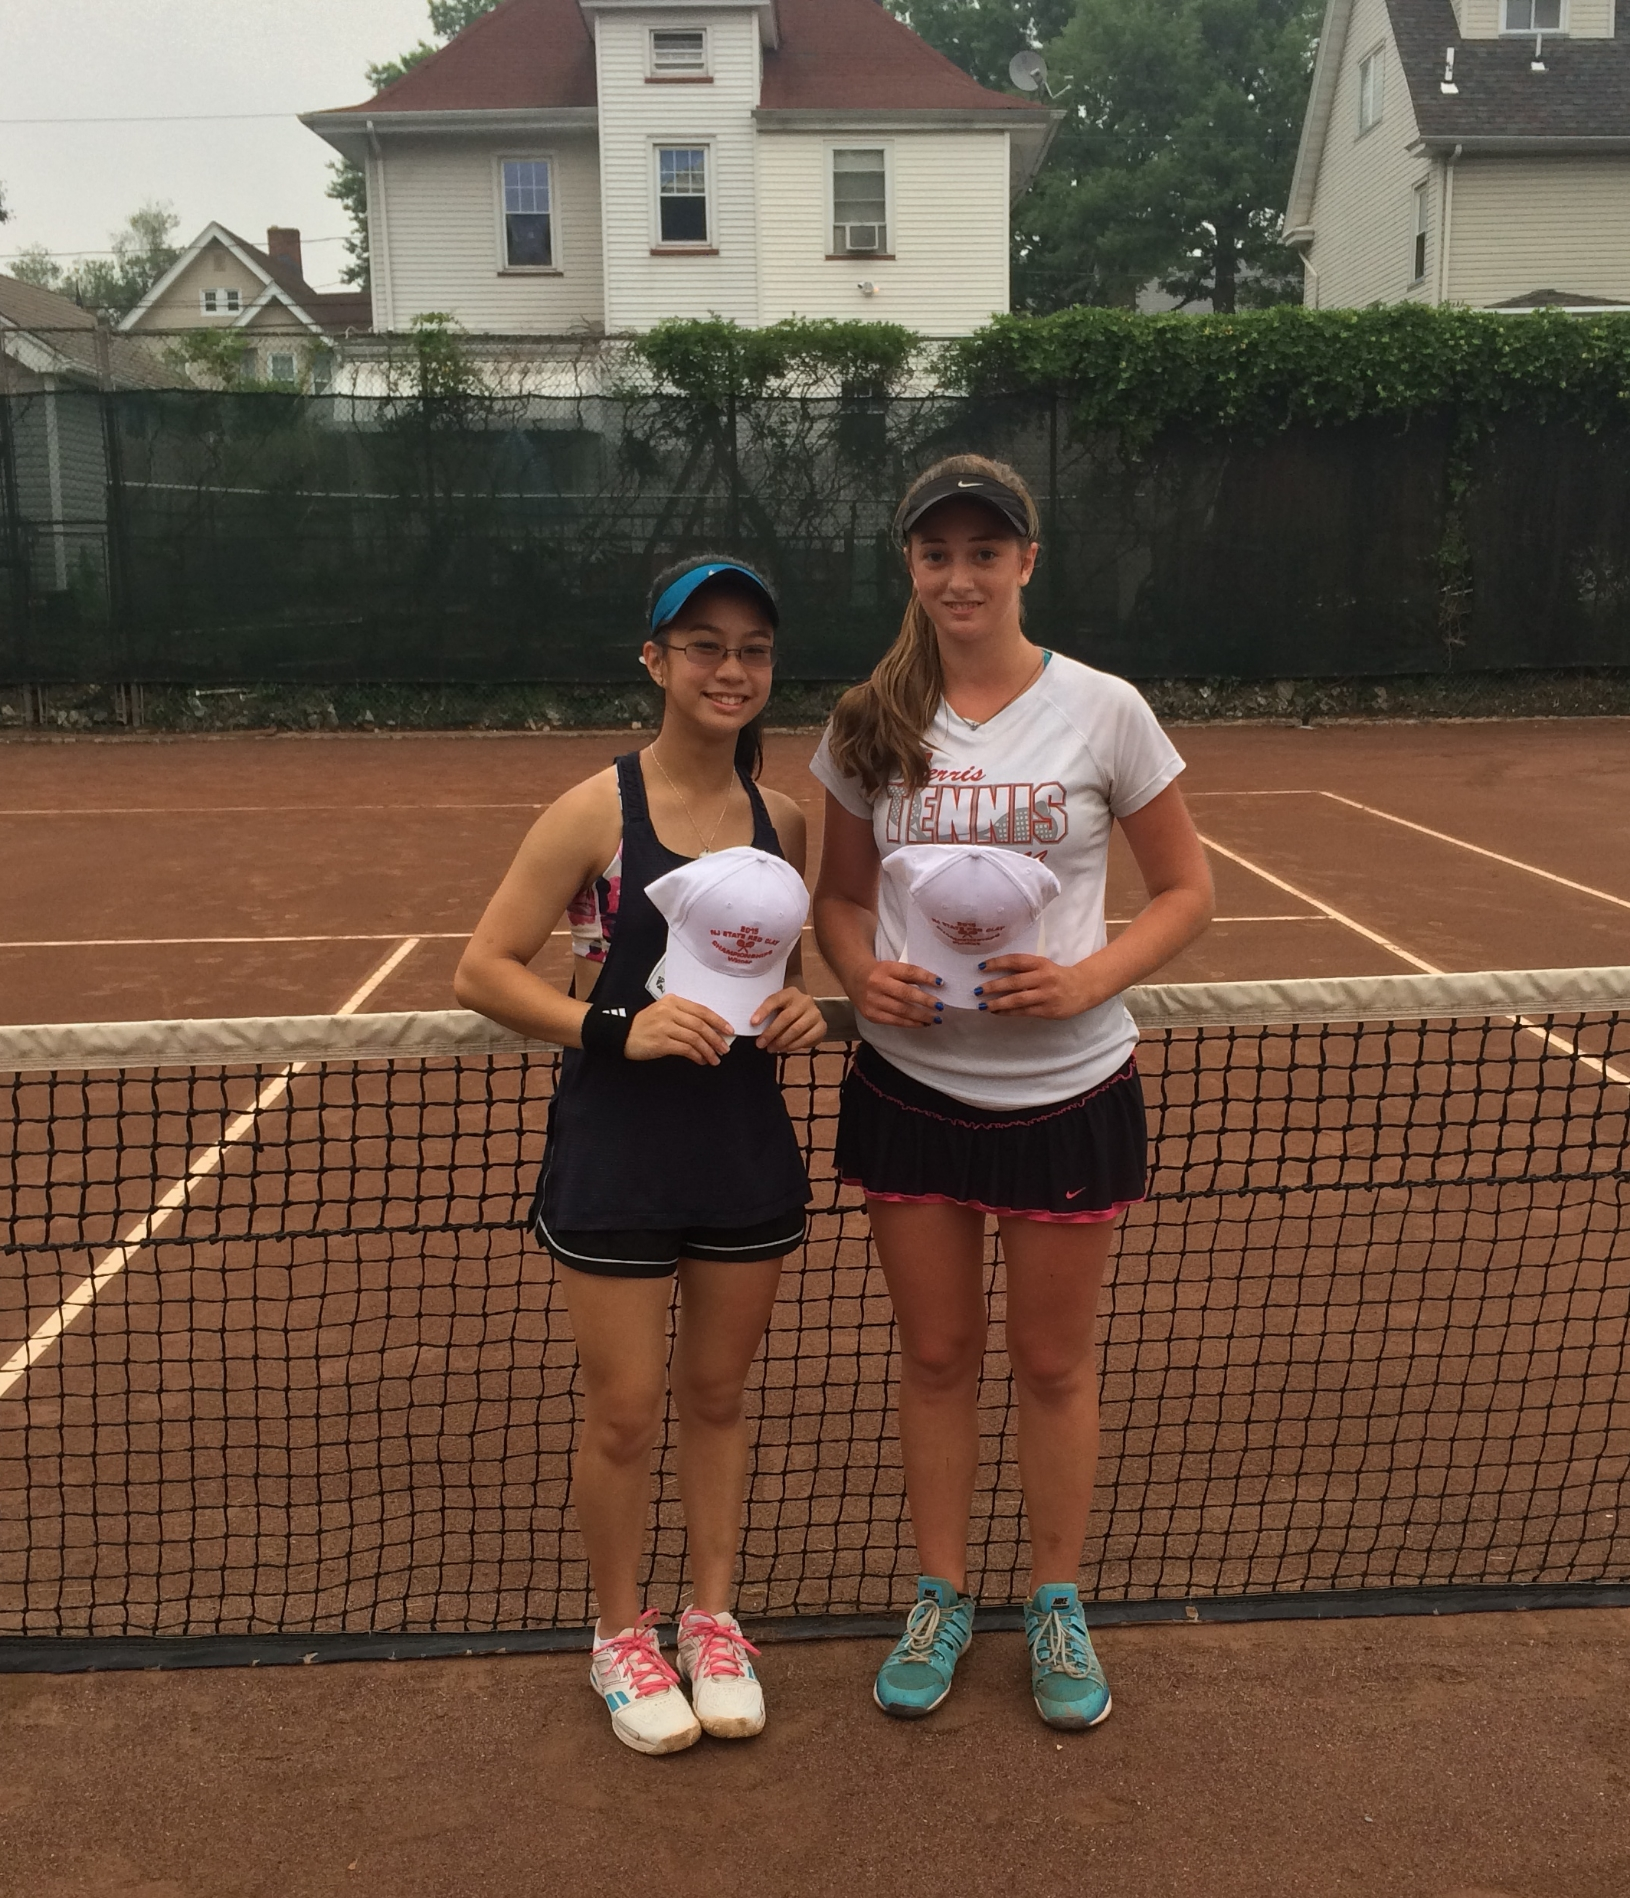 2015 Women's Open Winner, Andrea Cerdan (left) & Runner-up Courtney Provan (right)